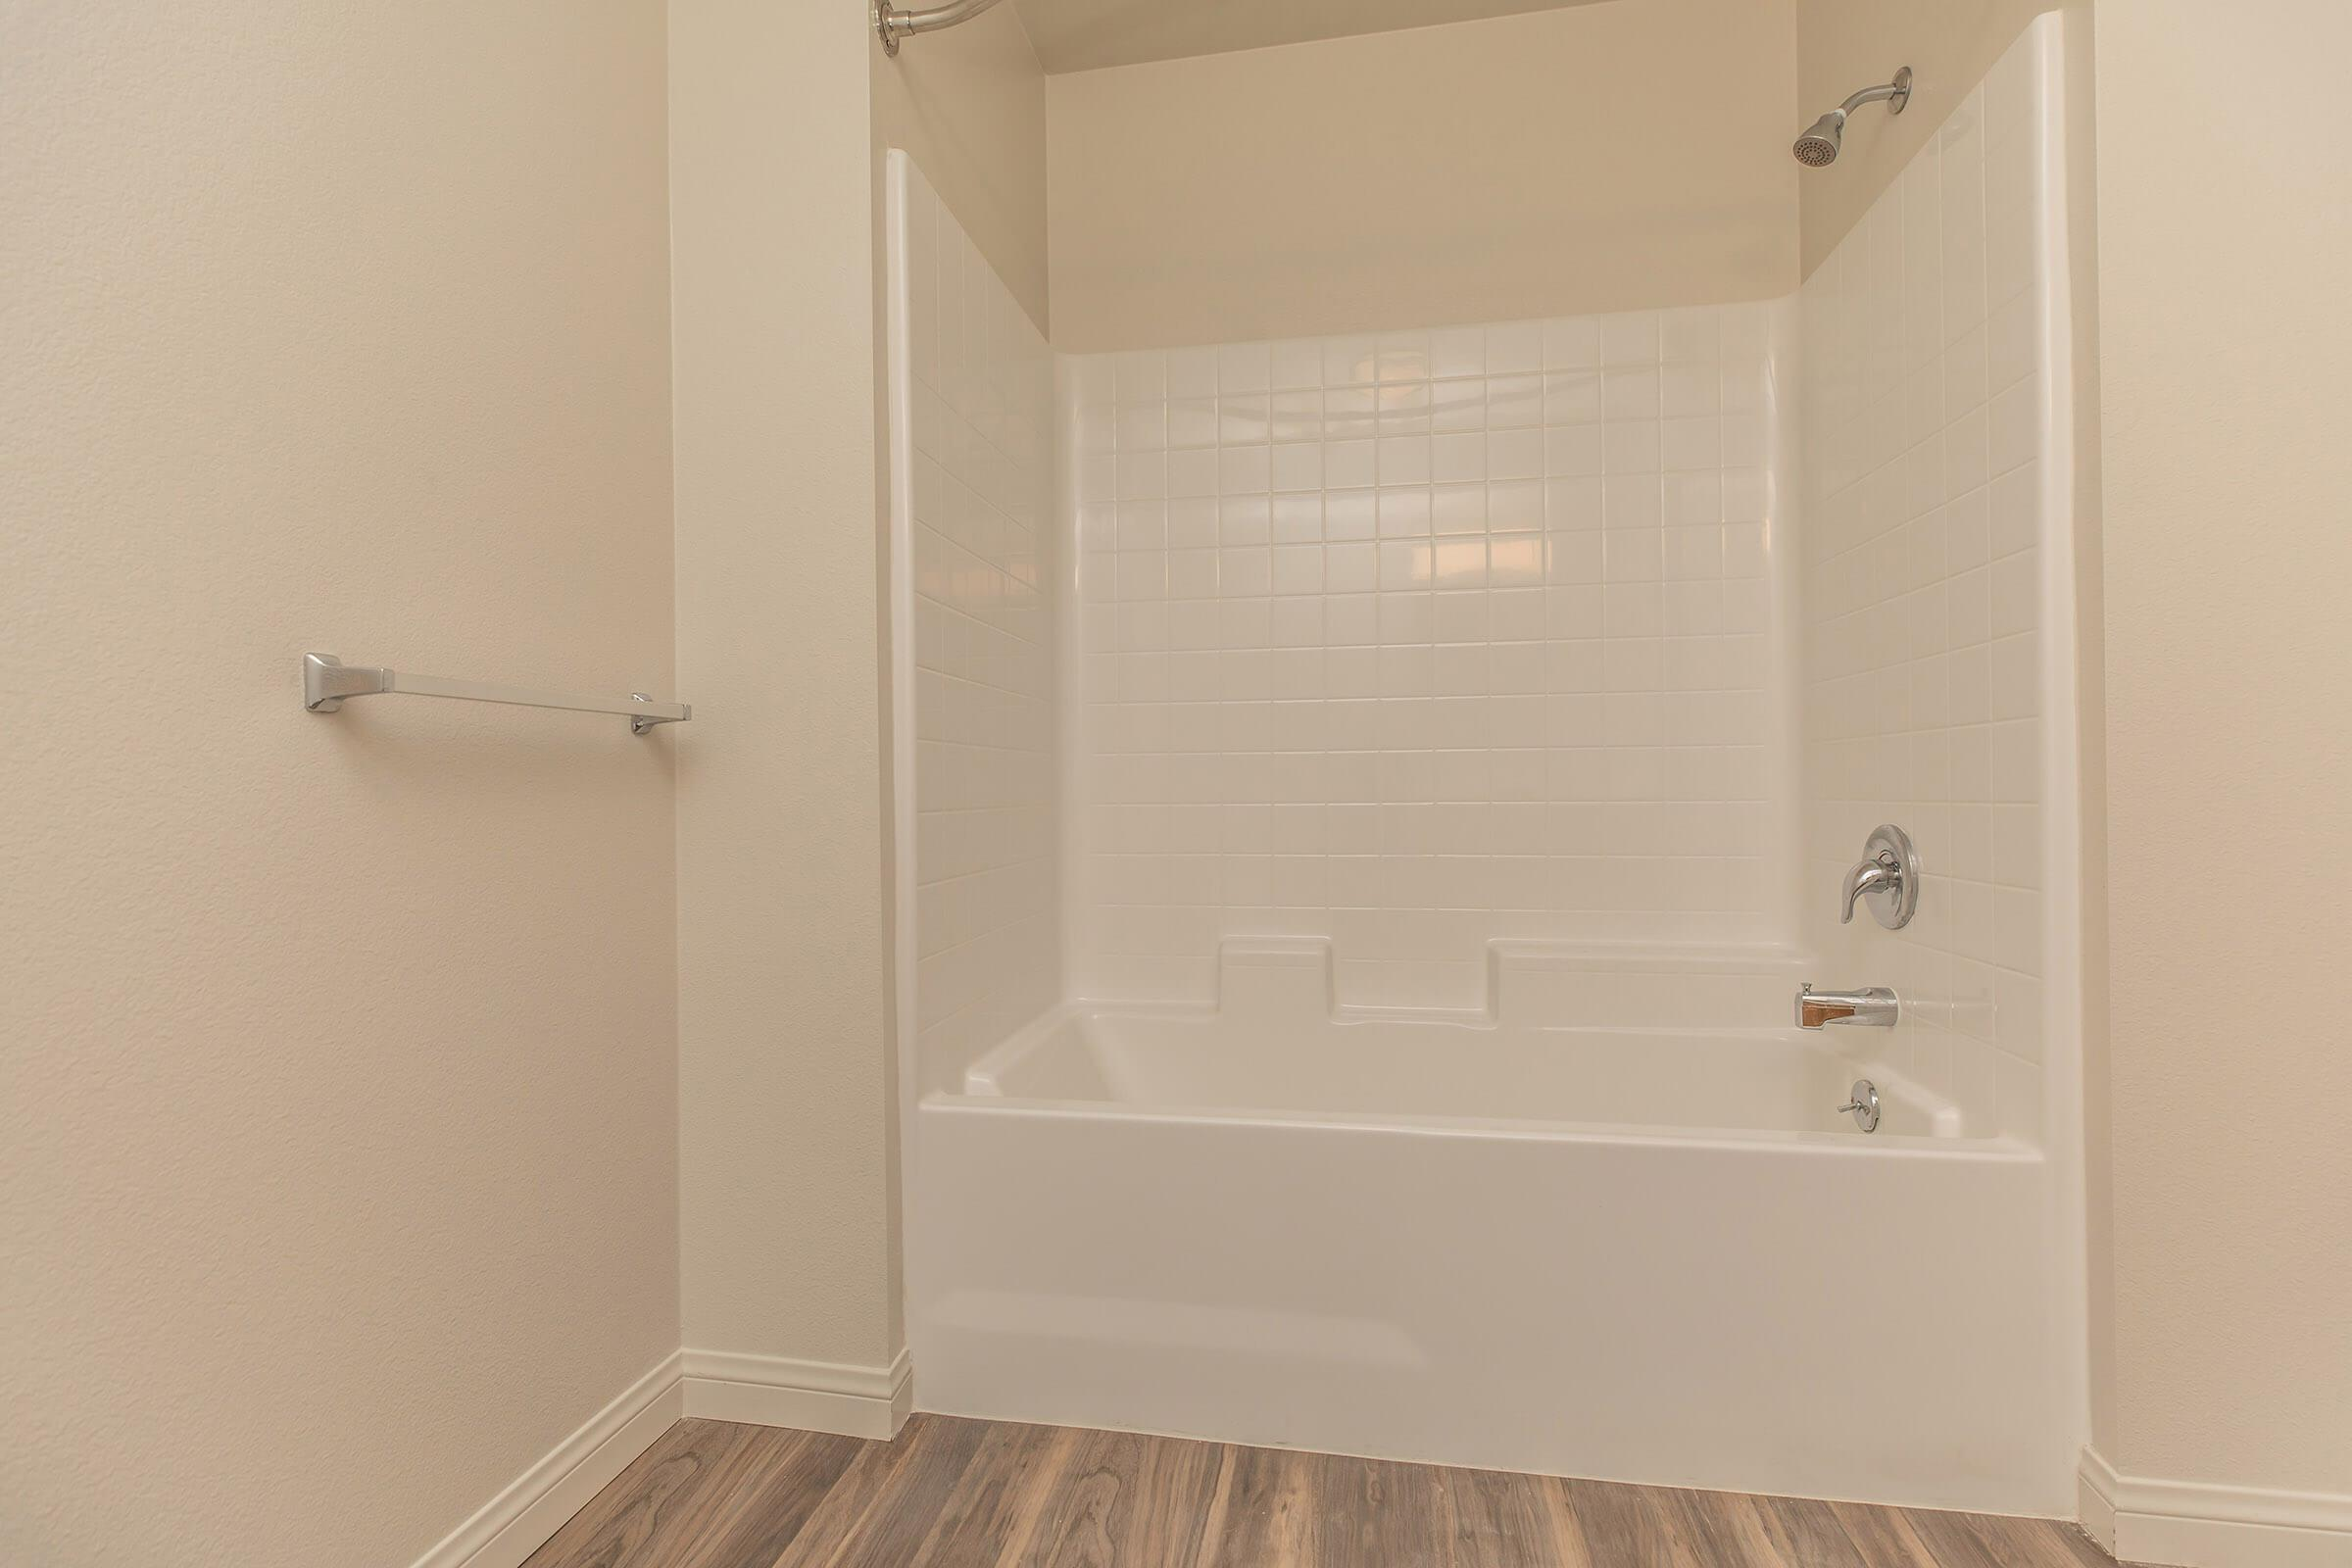 a room with a large tub next to a shower